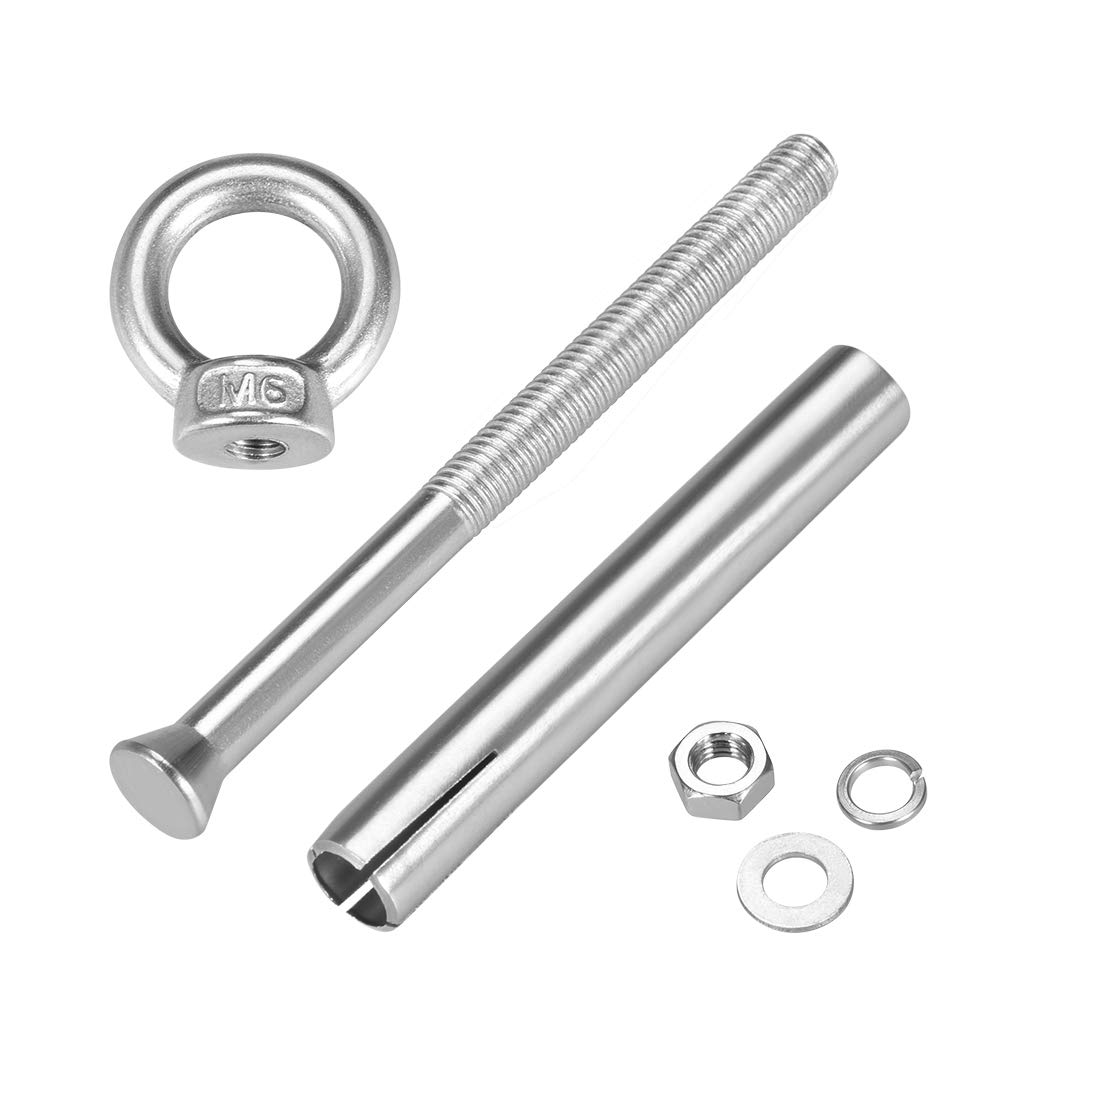 uxcell M12 x 100 Expansion Eyebolt Eye Nut Screw with Ring 304 Stainless Steel Anchor Raw Bolts 2 Pcs